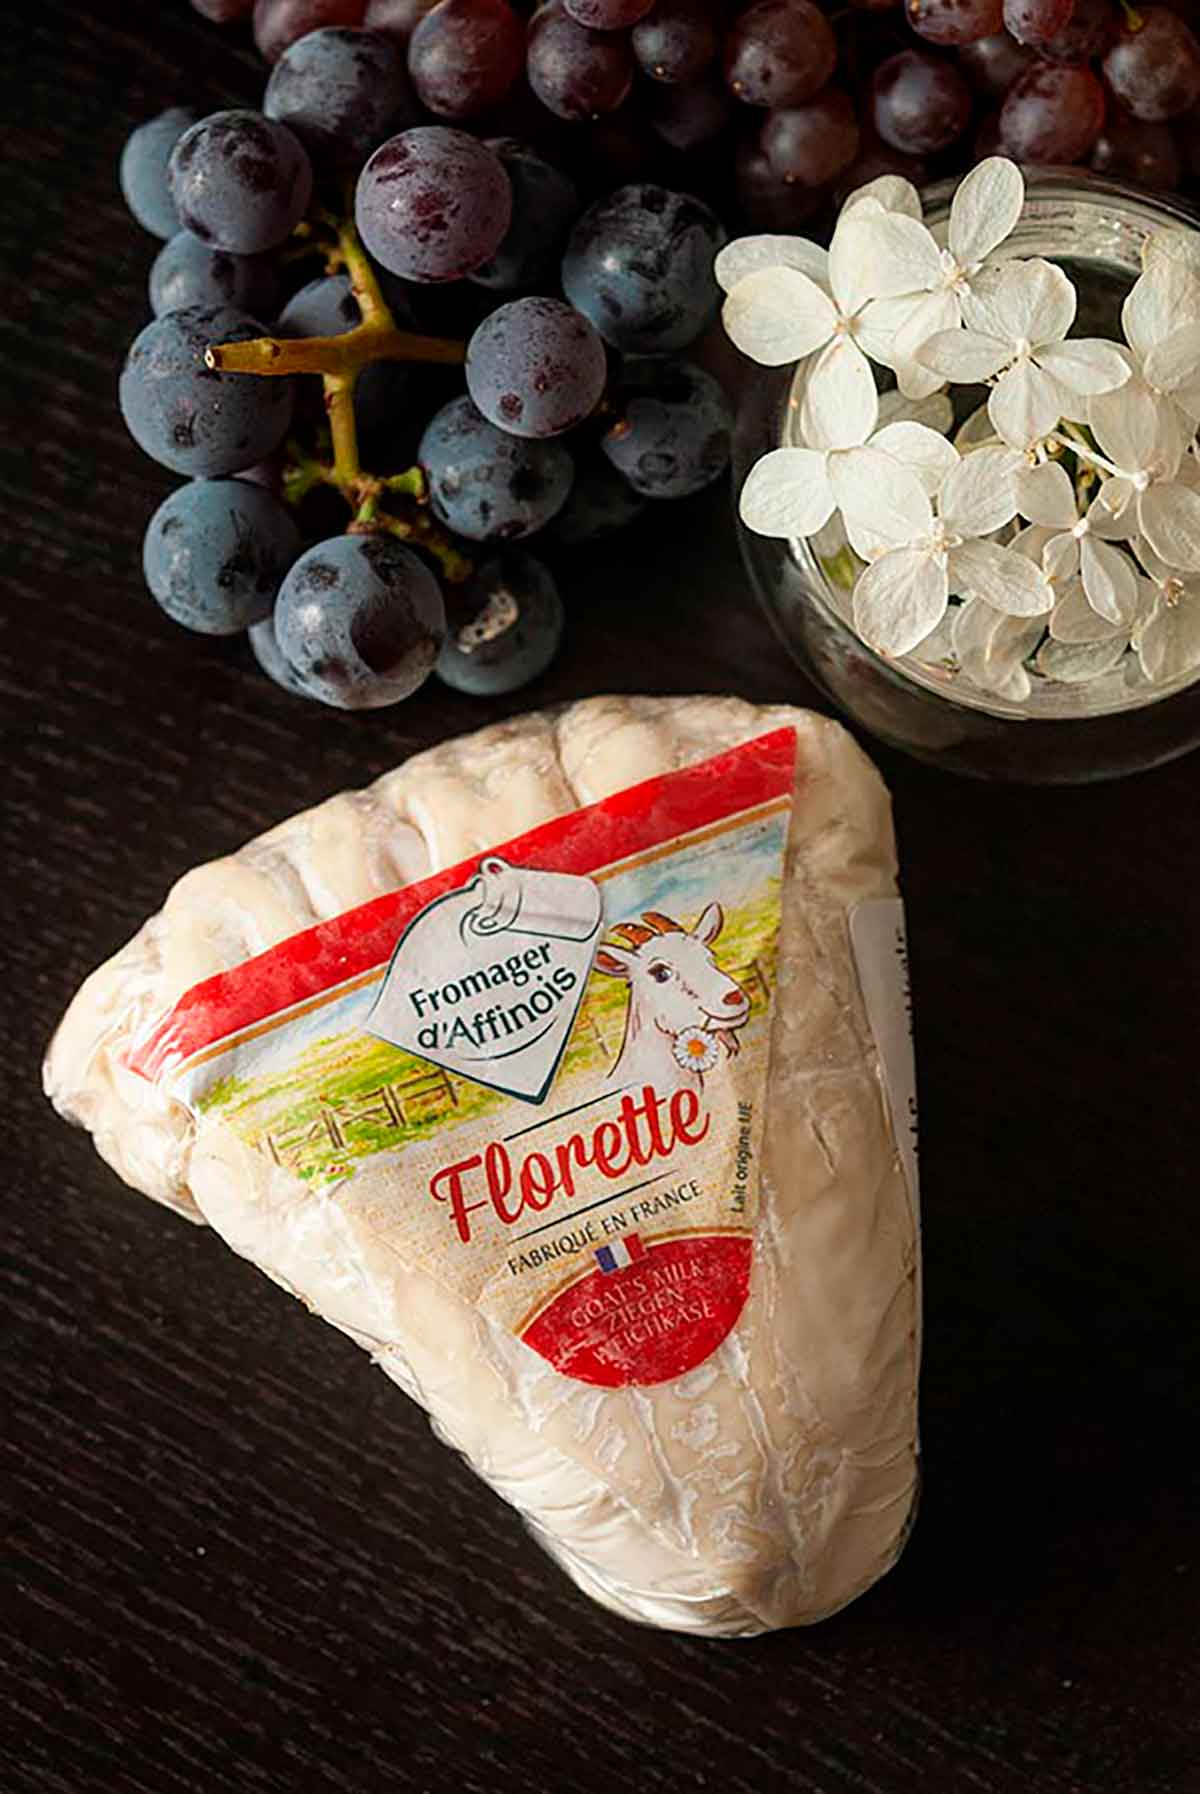 A package of Florette cheese on a table beside a small bunch of grapes and a small bowl of flowers.